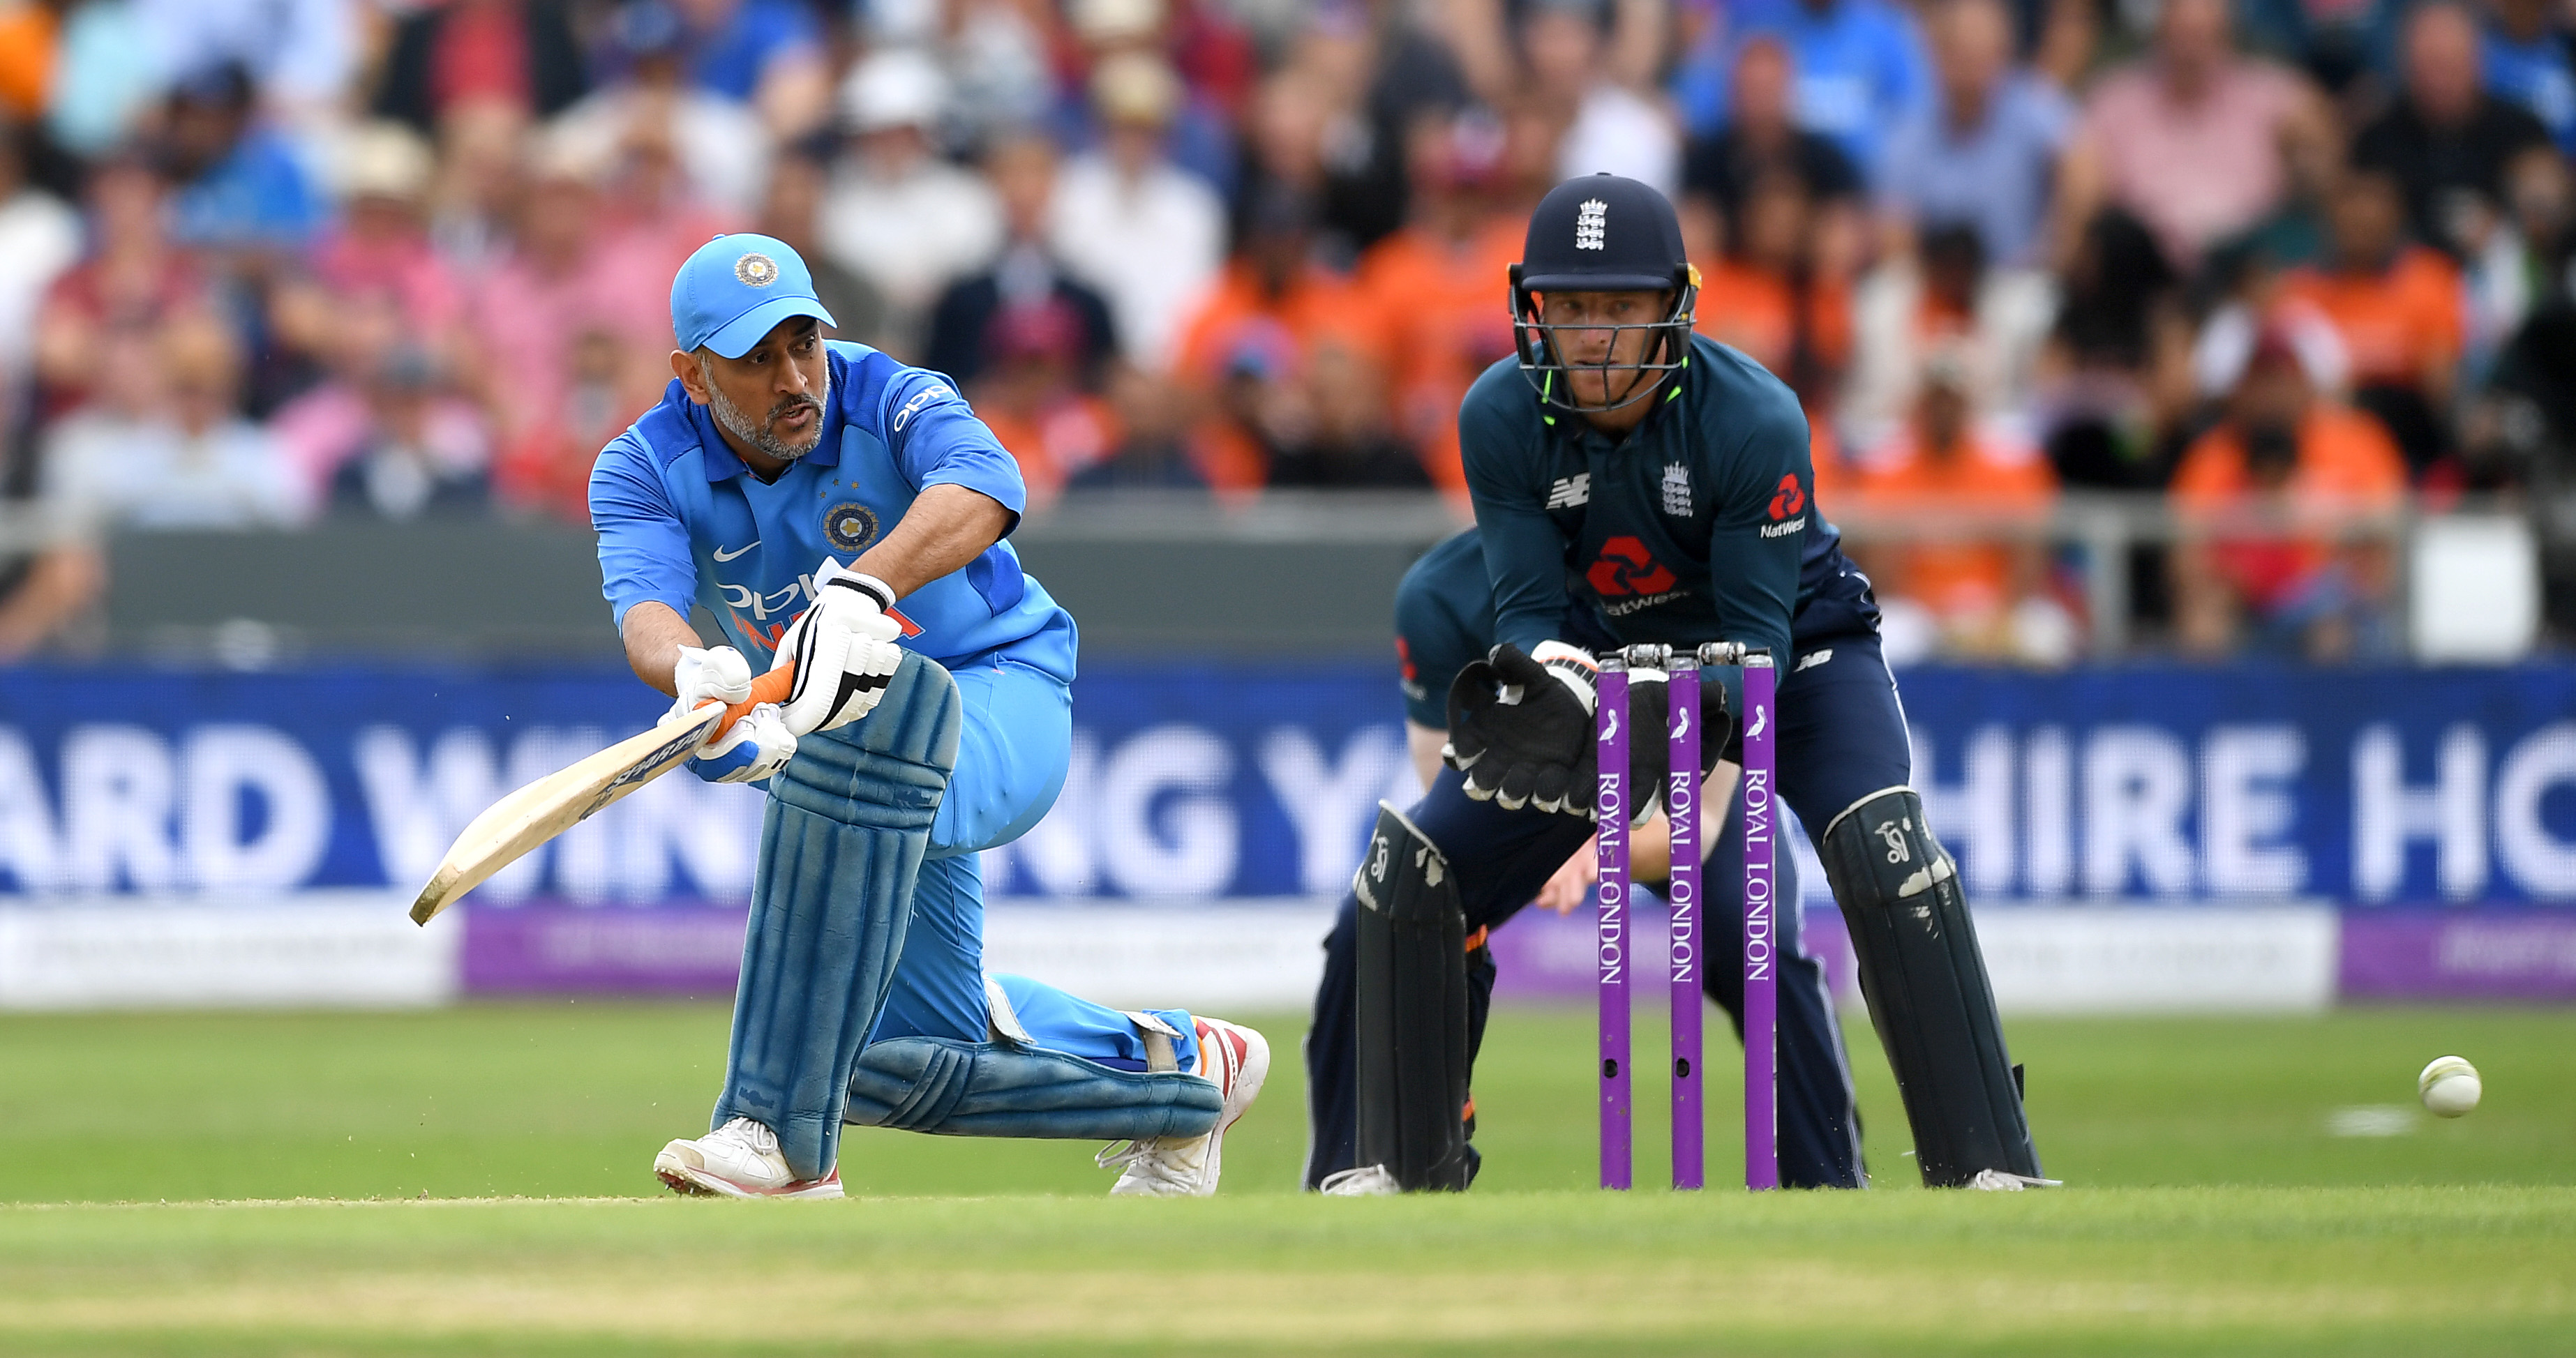 MS Dhoni struggled to get going with the bat in the ODI series. (Getty)